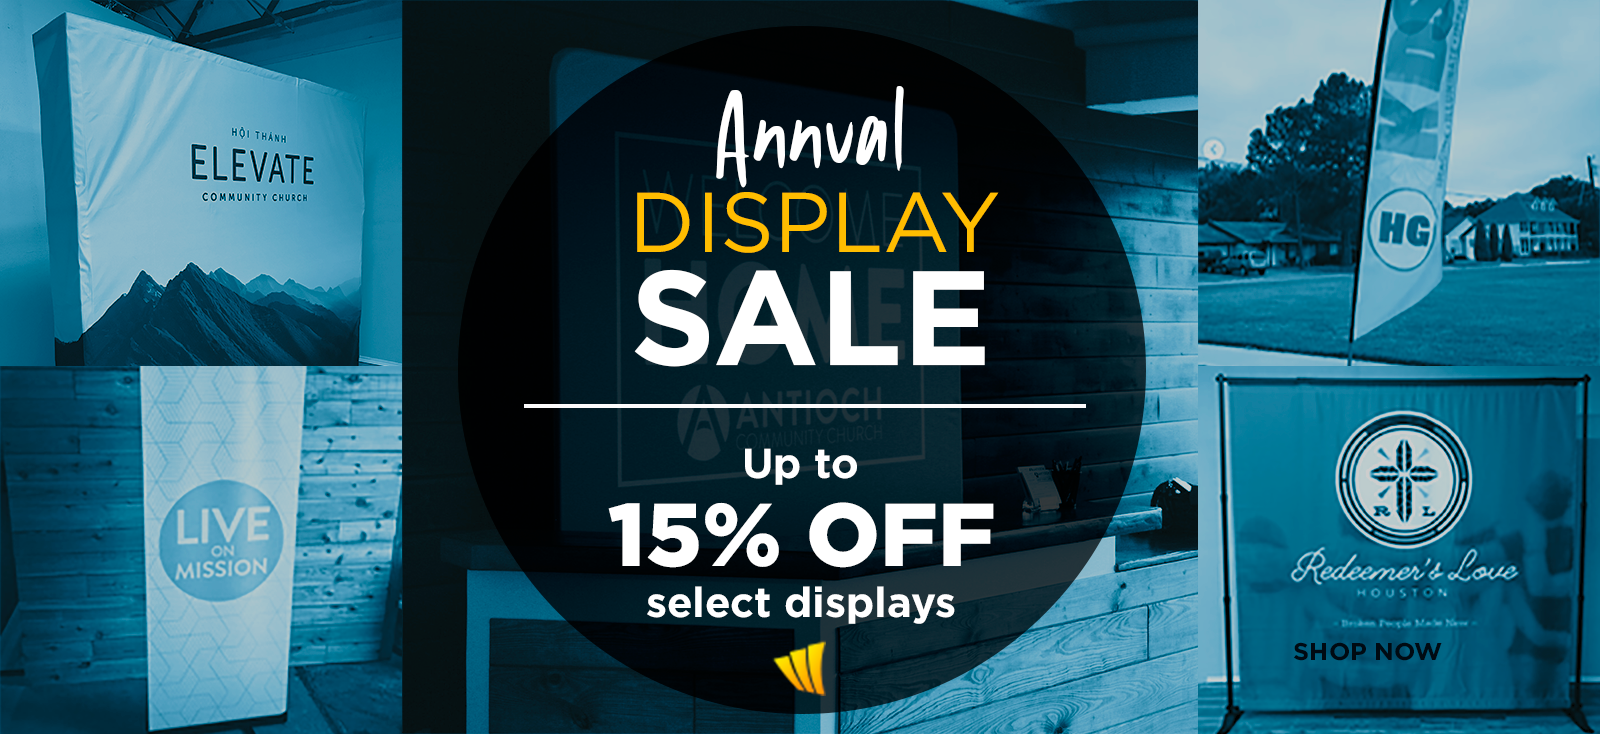 Annual Display Sale - Up to 15% off!